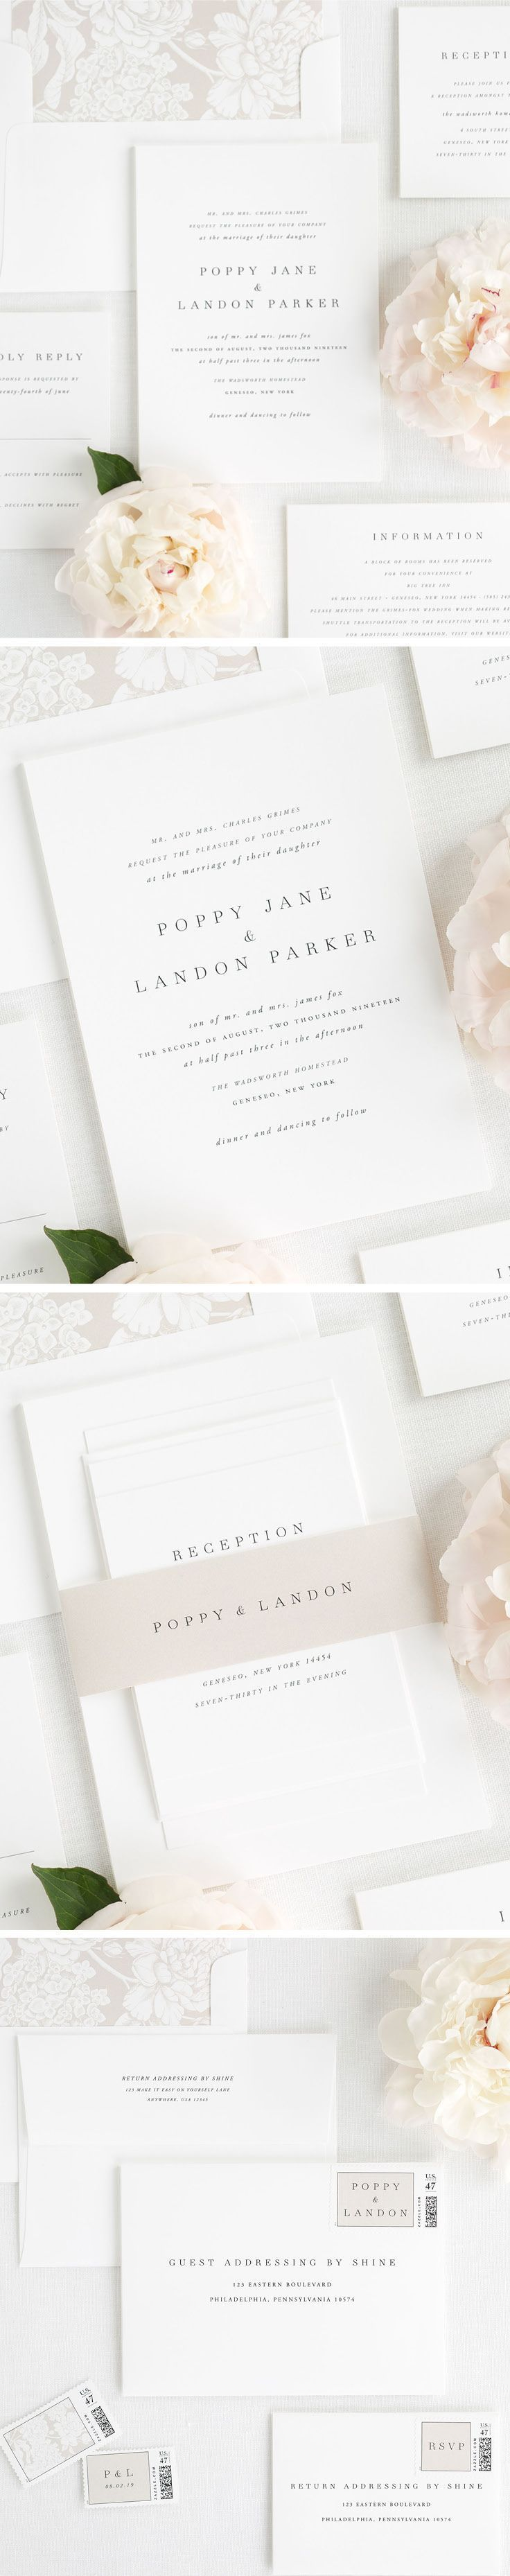 Meet Poppy, our simple and sophisticated wedding invitation design new for 2017. Poppy has a mix of classic and romantic elements which makes this design so gorgeous. Italics and small caps play a big role in creating such a simple design that is perfect for a sophisticated and timeless wedding.